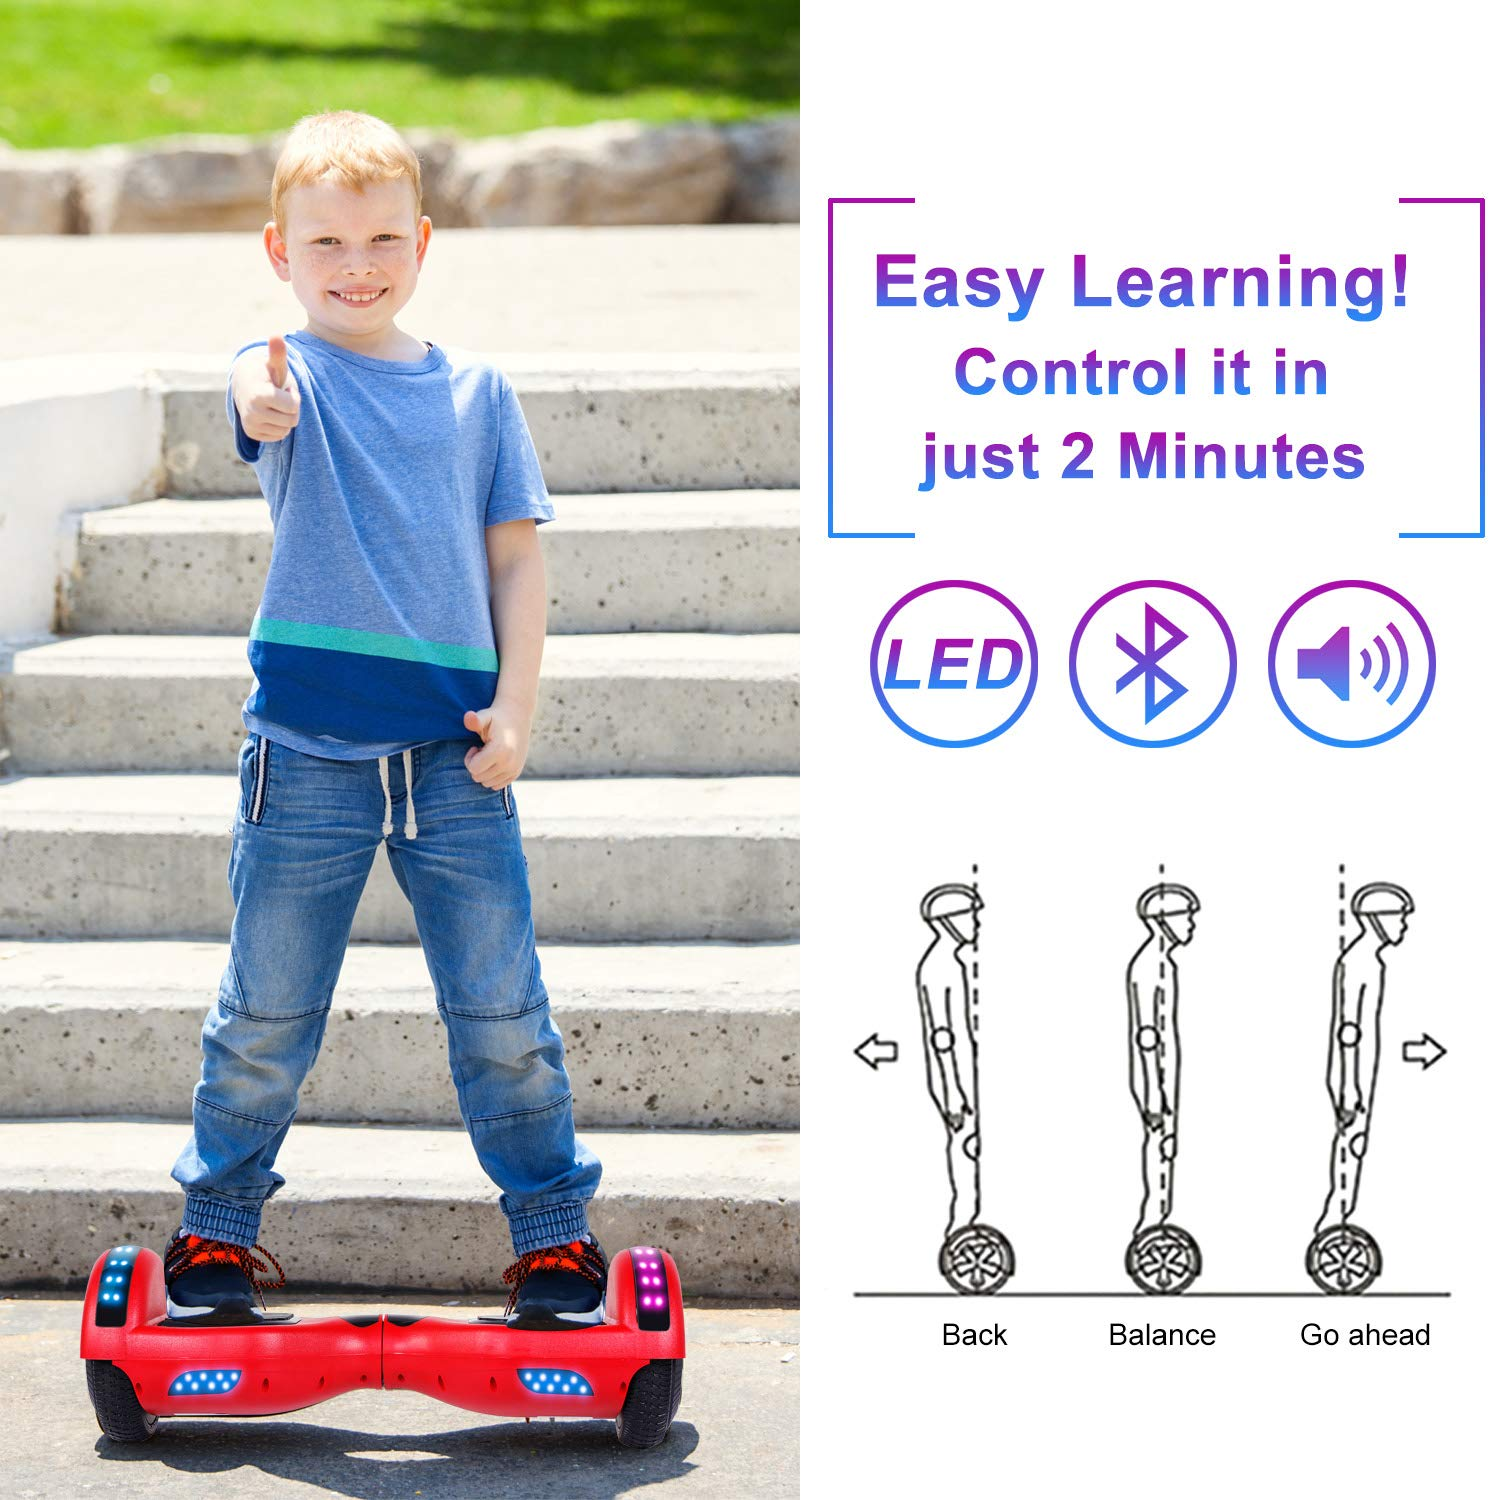 "SISIGAD Hoverboard 6.5"" Self Balancing Scooter with Colorful LED Wheels Lights Two-Wheels self Balancing Hoverboard Dual 300W Motors Hover Board UL2272 Certified(Free Carry Bag Available) by SISIGAD (Image #6)"